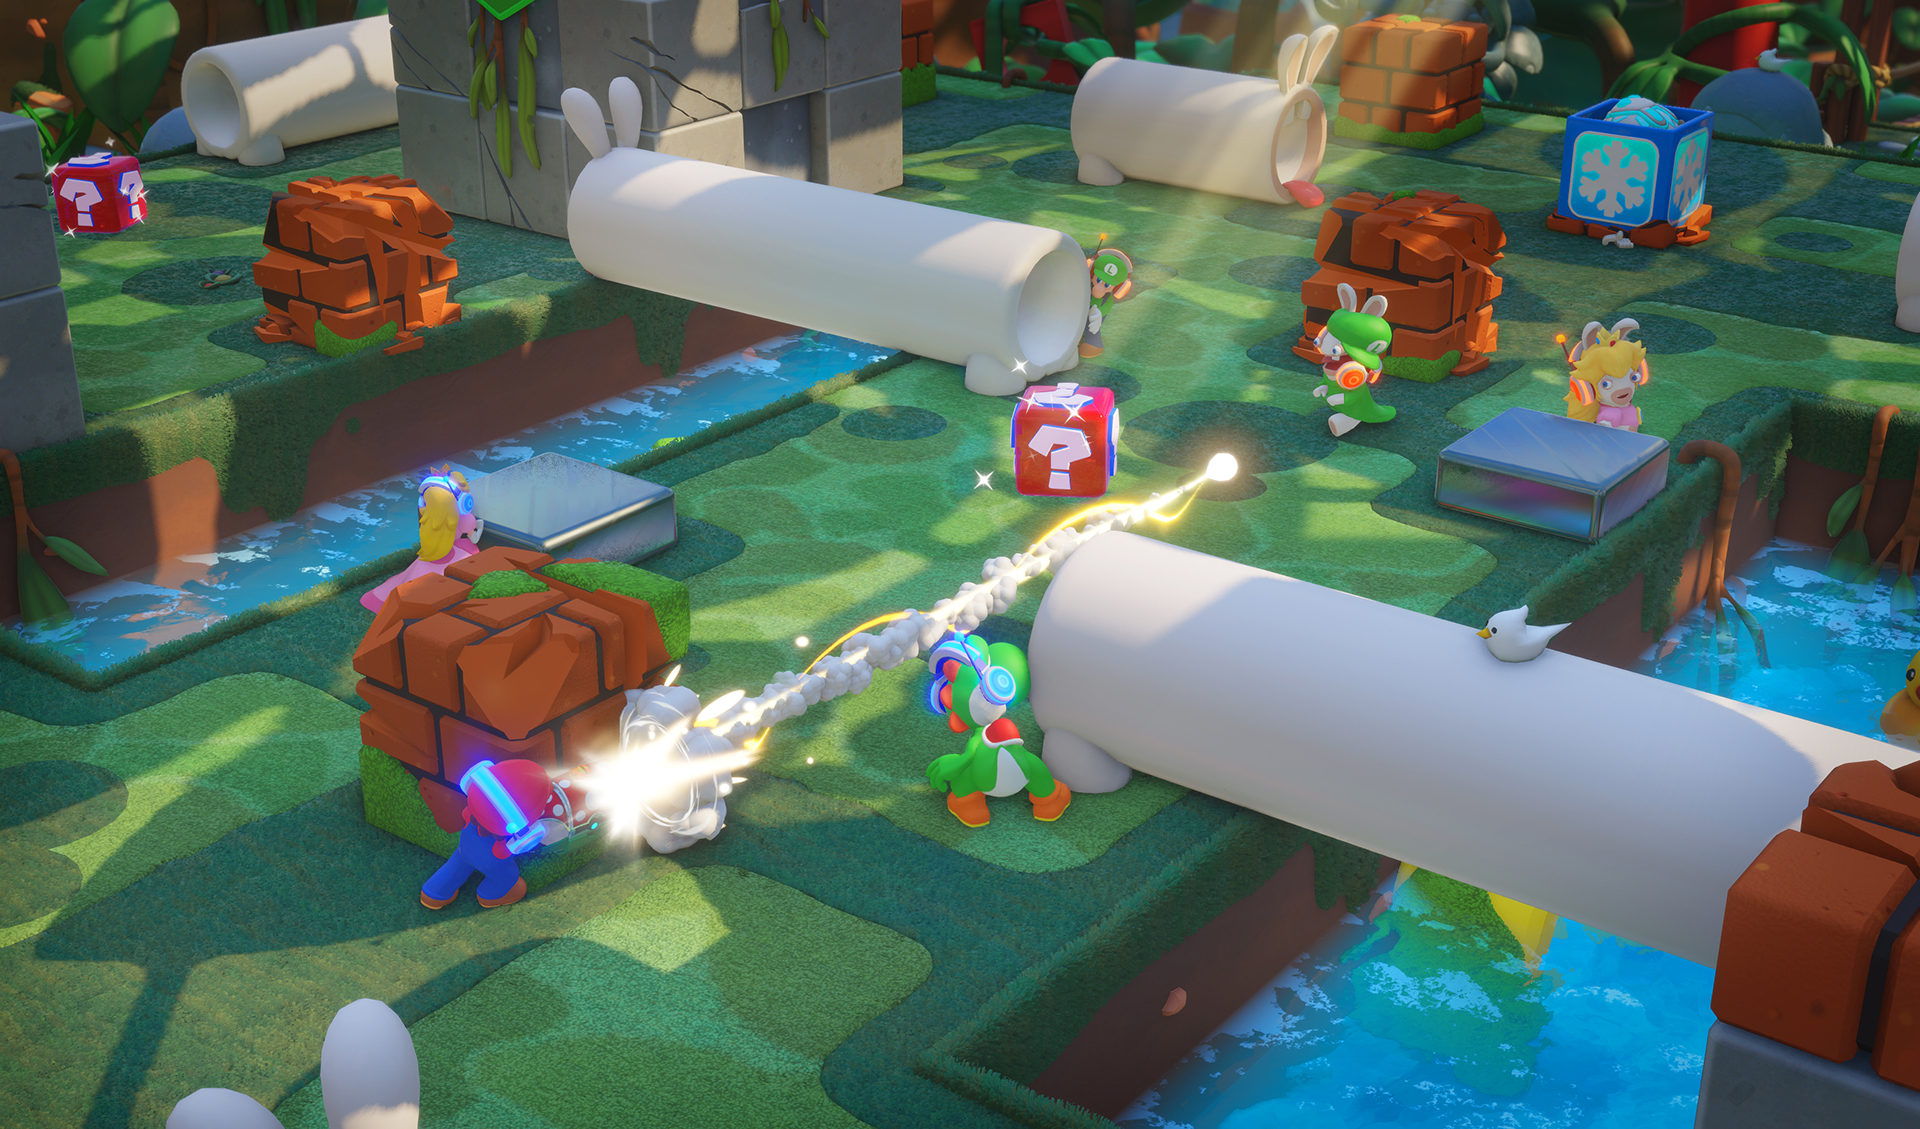 Mario rabbids mode versus